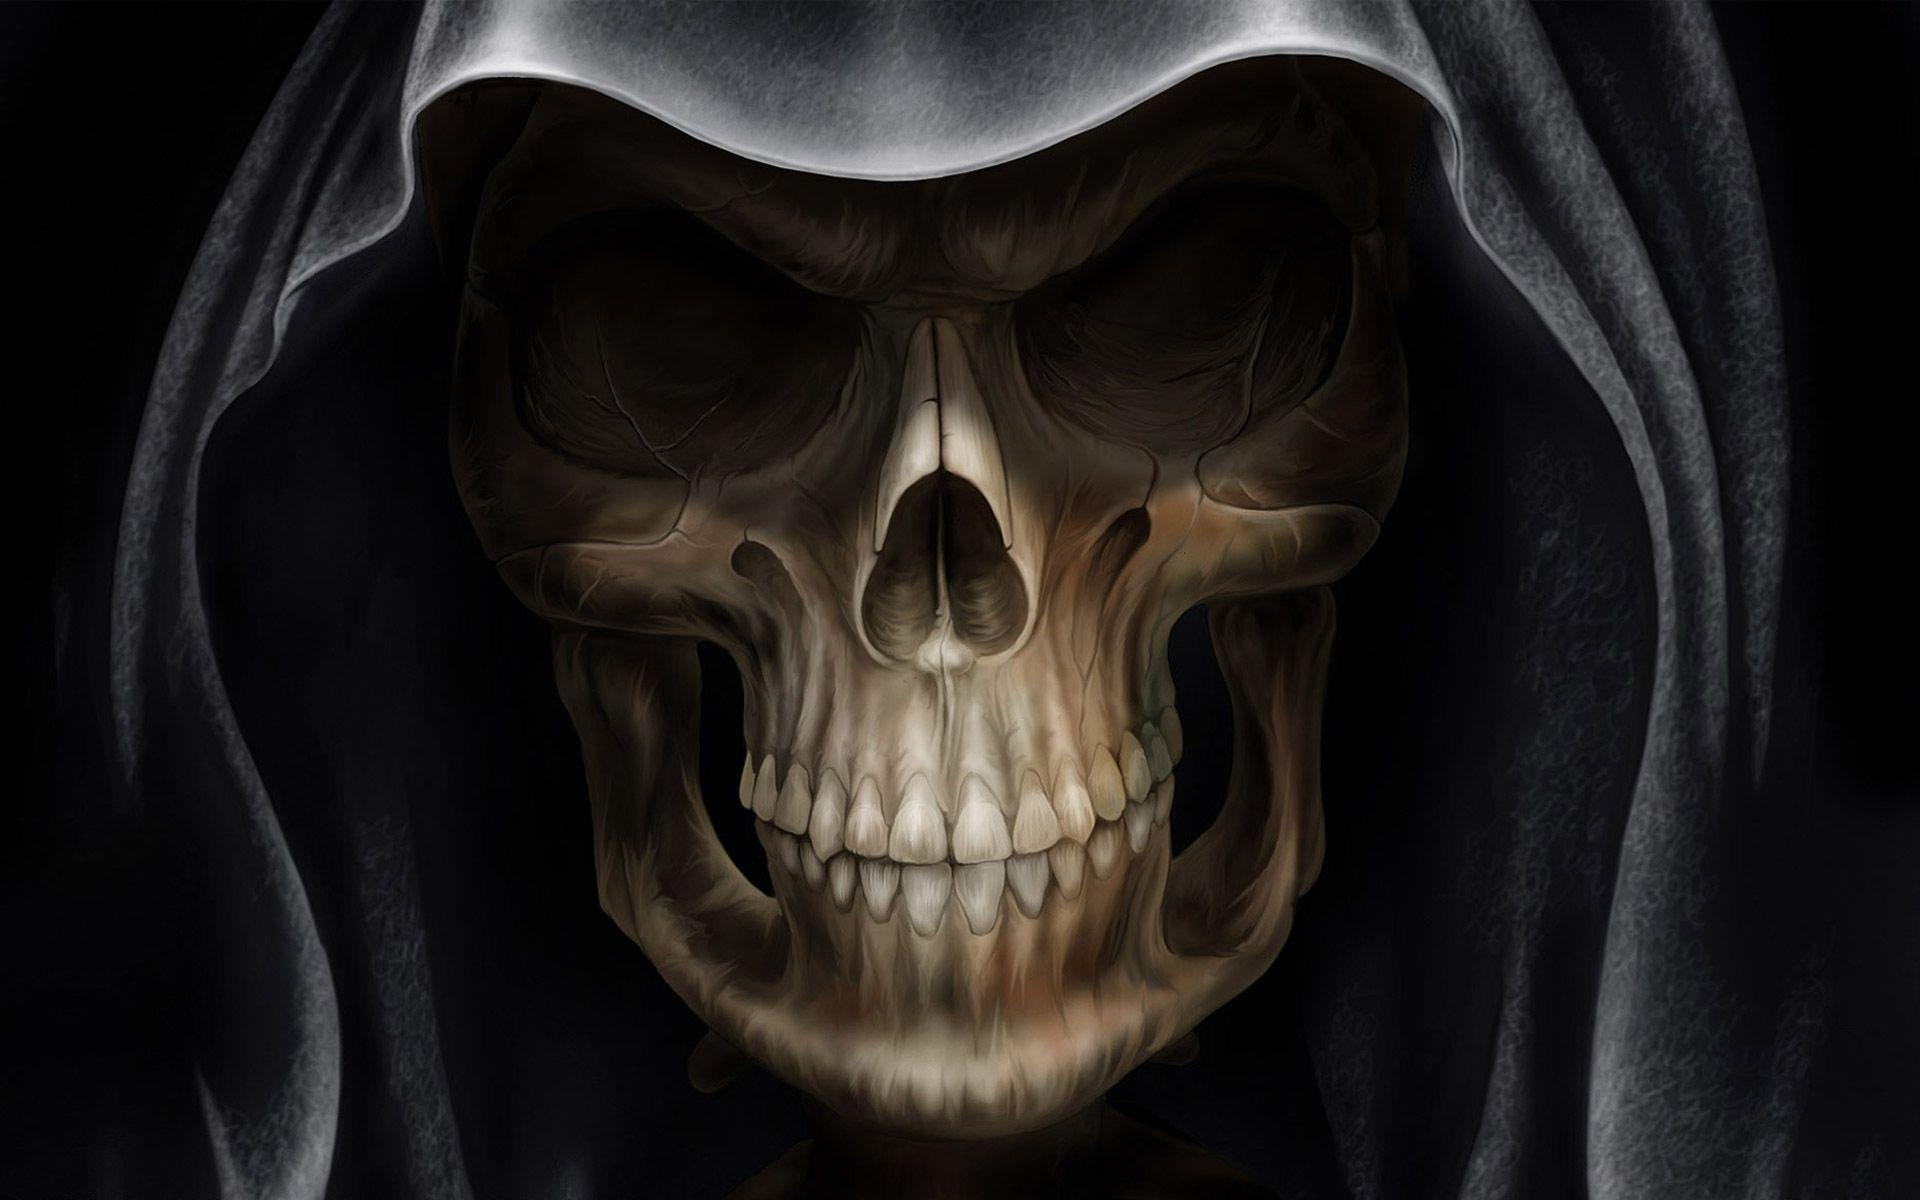 hd skull wallpapers - wallpaper cave